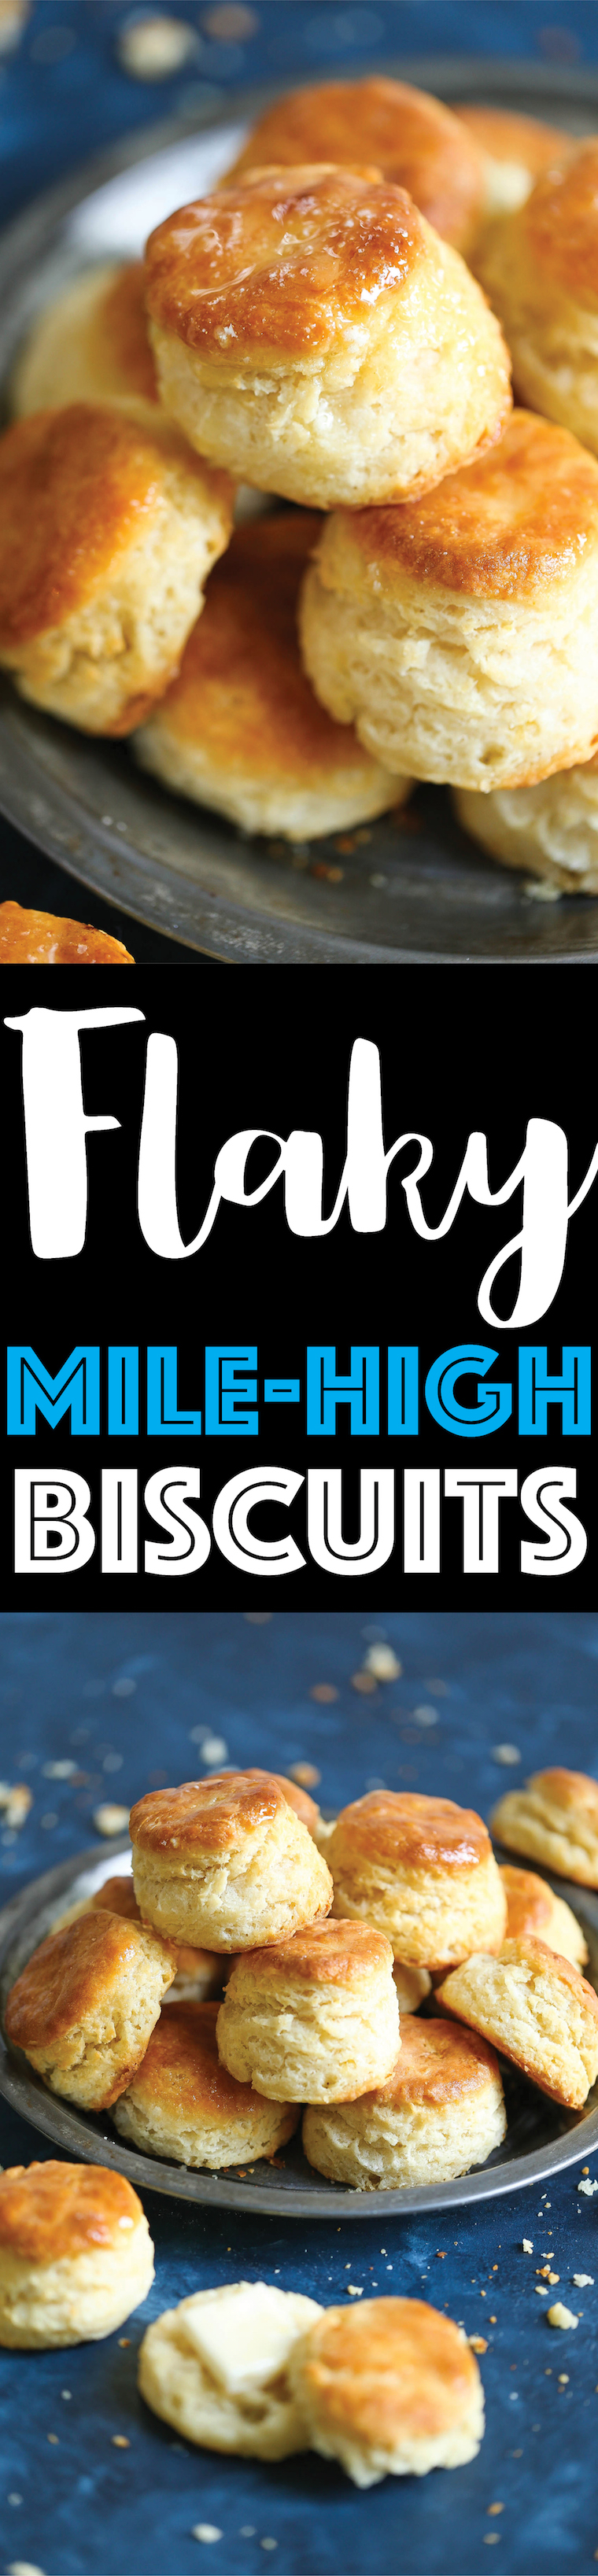 Flaky Mile High Biscuits -Is there anything better than warm, hot-out-of-the-oven, mile high, flaky biscuits that just melts in your mouth? No, right? Because these are truly the best biscuits you will ever make right at home!